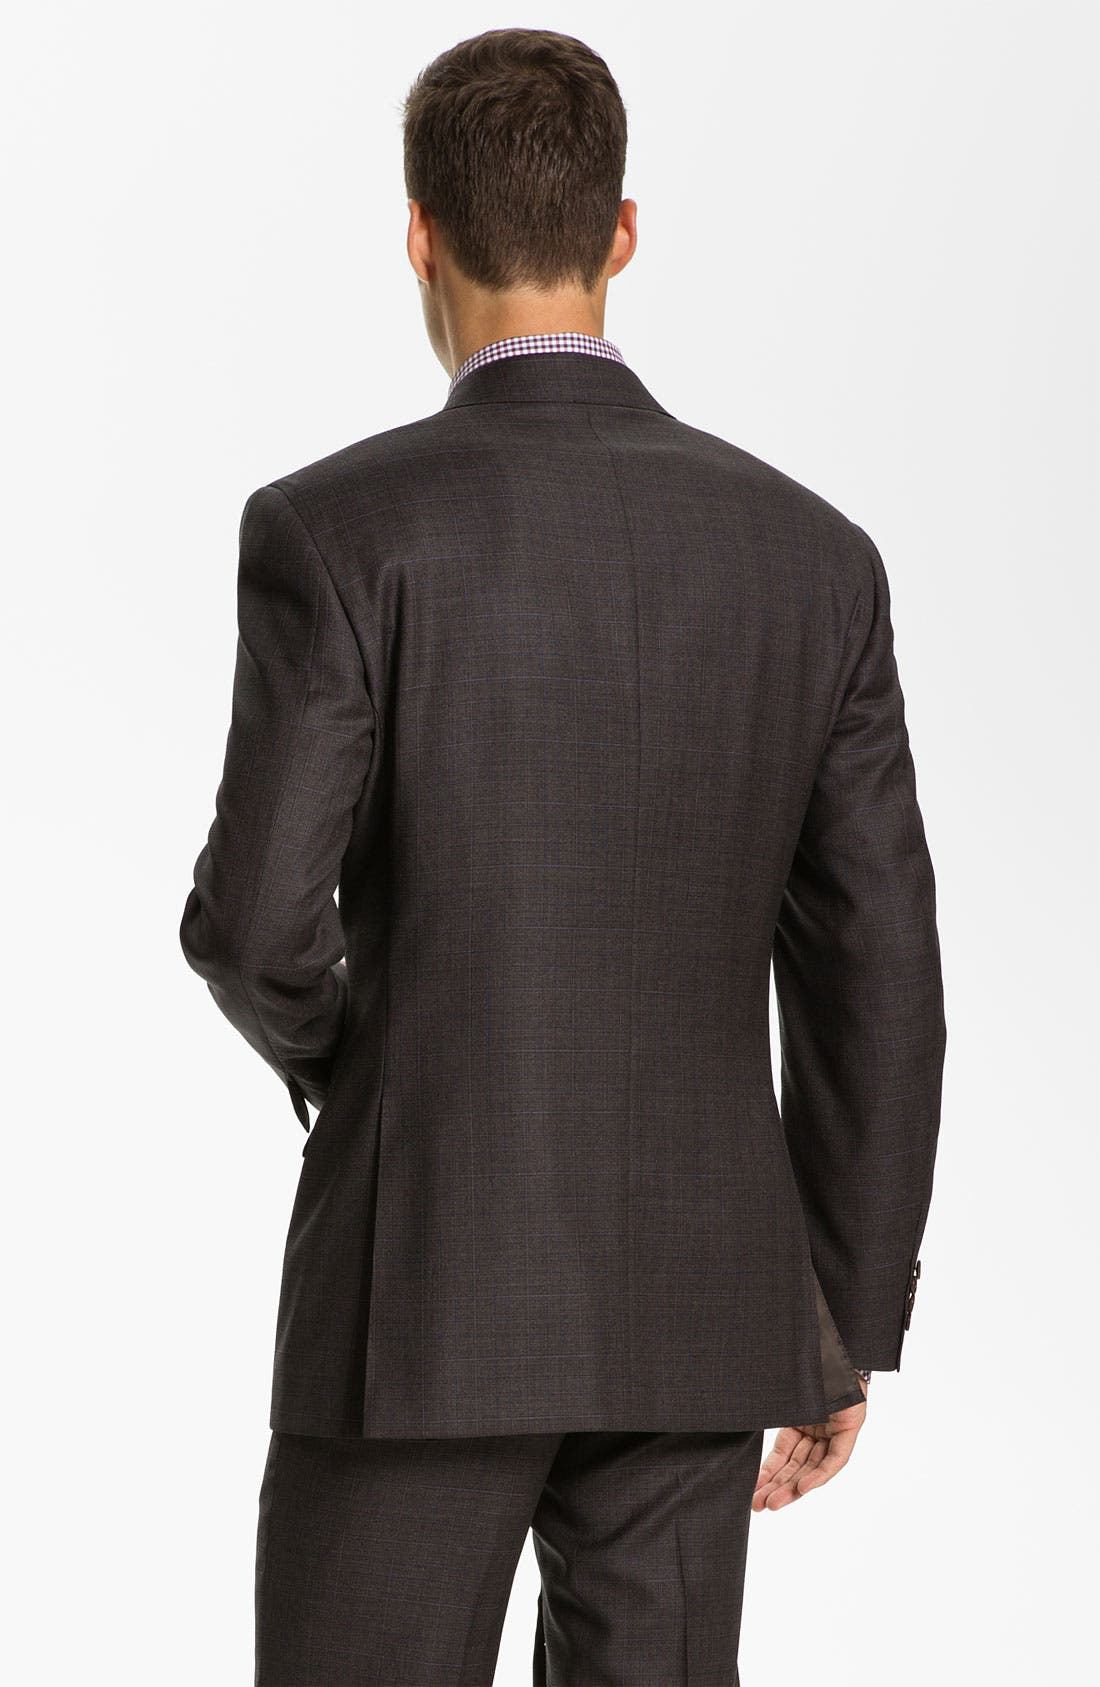 Three Piece Wool Suit,                             Alternate thumbnail 2, color,                             200